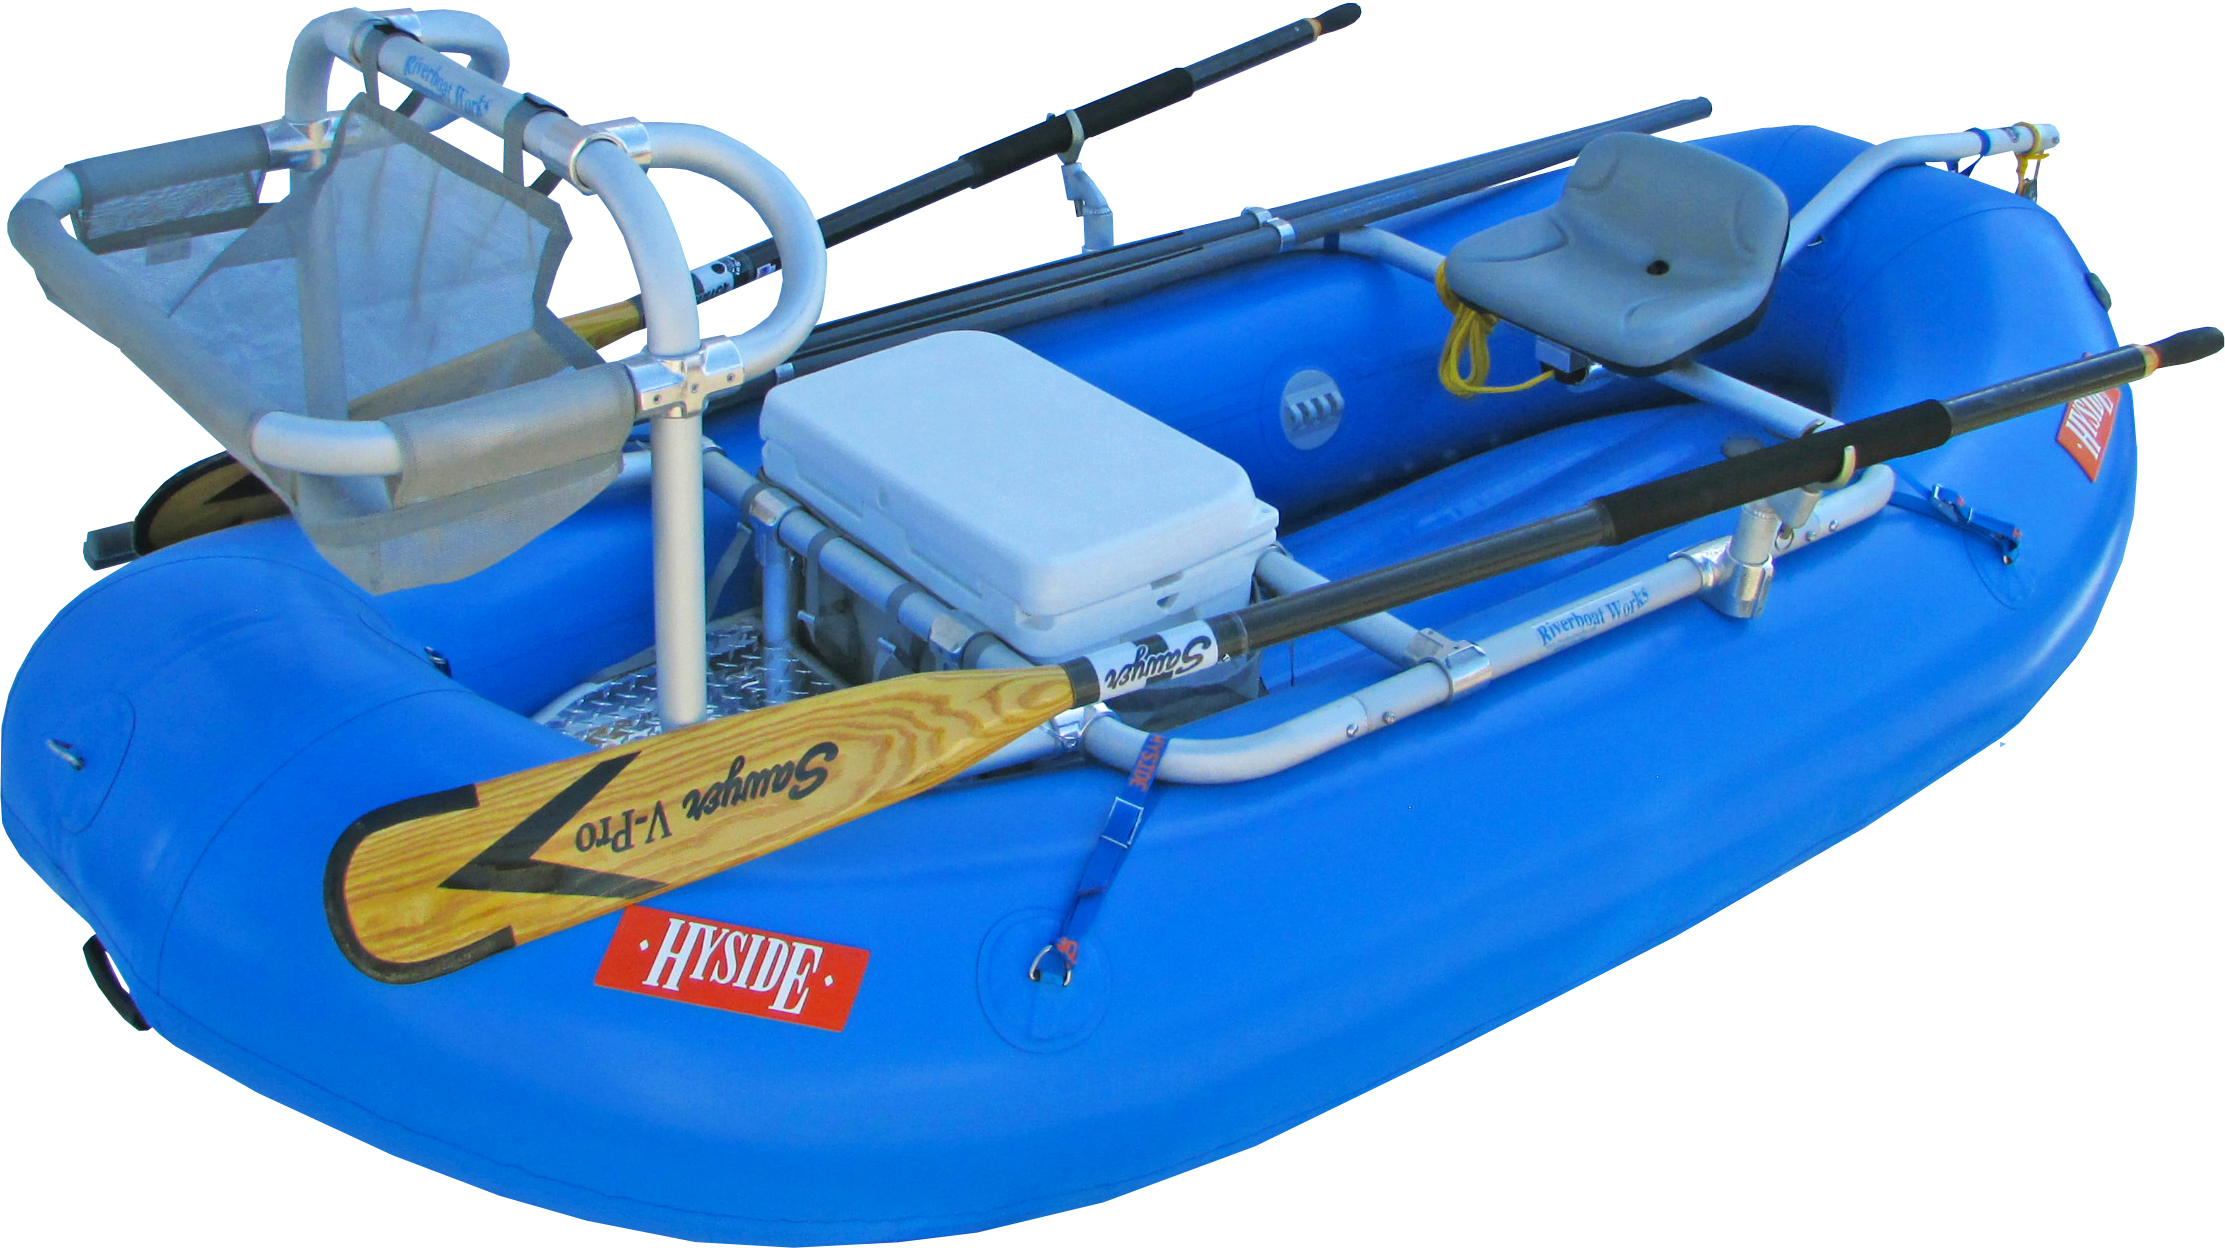 Click image for larger version  Name:raft2.jpg Views:677 Size:1.48 MB ID:9648